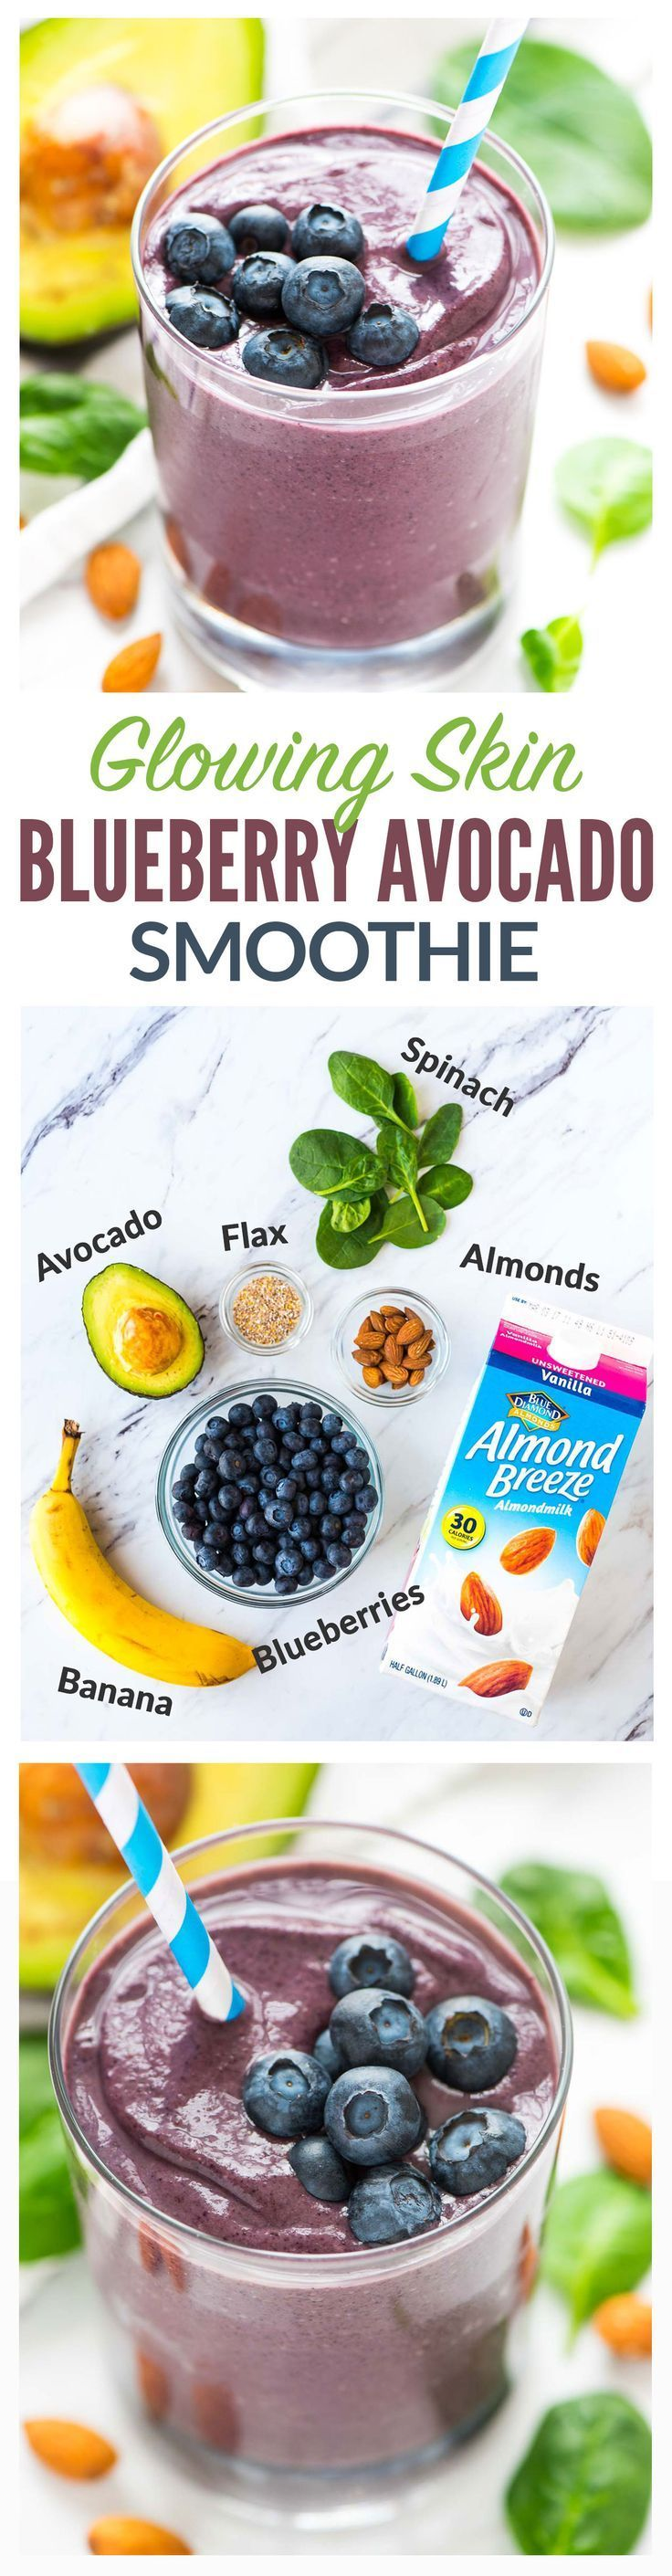 Hydrating Blueberry Avocado Banana Smoothie for glowing skin! With antioxidants and healthy fats from ingredients like spinach, blueberries, almond milk, avocados, and flax, this green smoothie is DELICIOUS and a natural way to promote beauty and health. Recipe at http://wellplated.com | /wellplated/